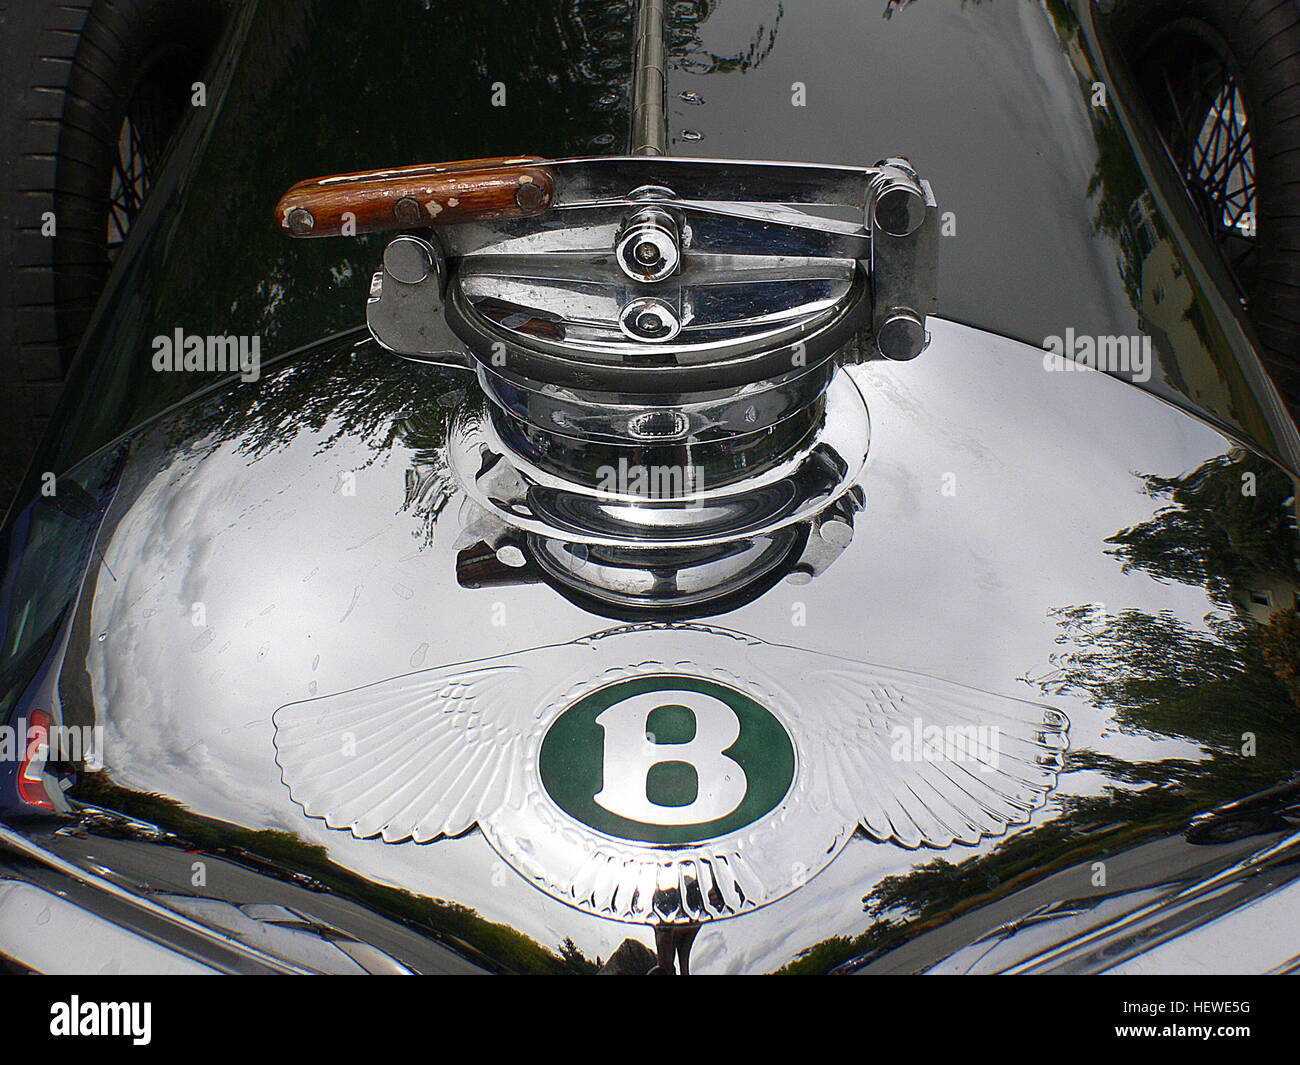 Ication (,),1930 Bentley Speed Six,Bridge Camera,British Classic Cars,Car  Shows,Car Badge,Cars,Fast Cars,International Vintage Bentley Tour Of New  Zealand ...